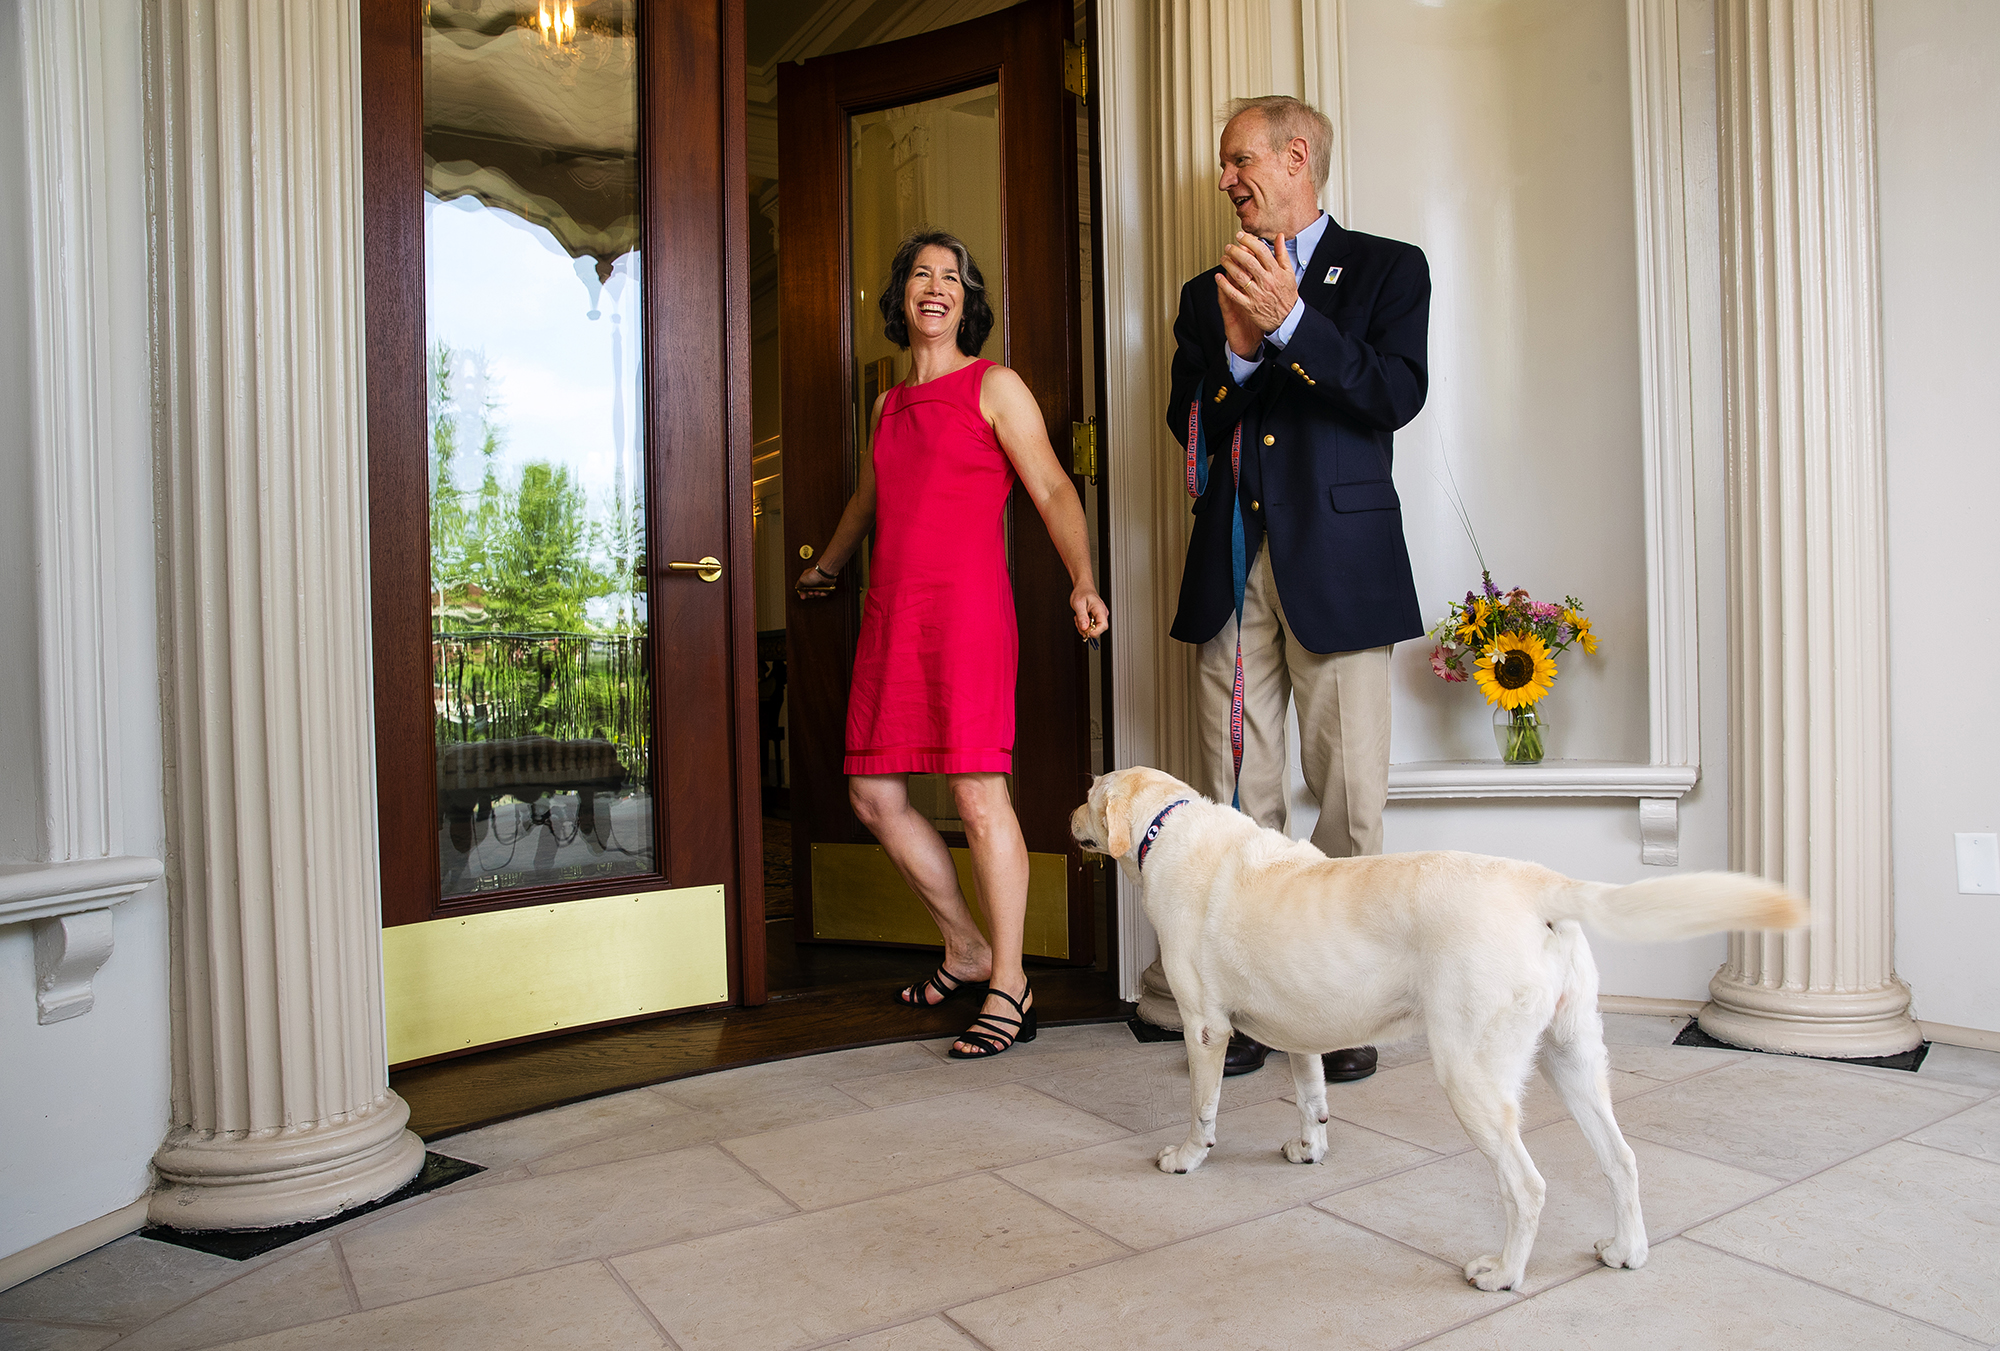 First Lady Diana Rauner opens the door to the Illinois Governor's Mansion with her husband Illinois Gov. Bruce Rauner and their dog Stella during a grand reopening celebration Saturday, July 14, 2018. [Ted Schurter/The State Journal-Register]